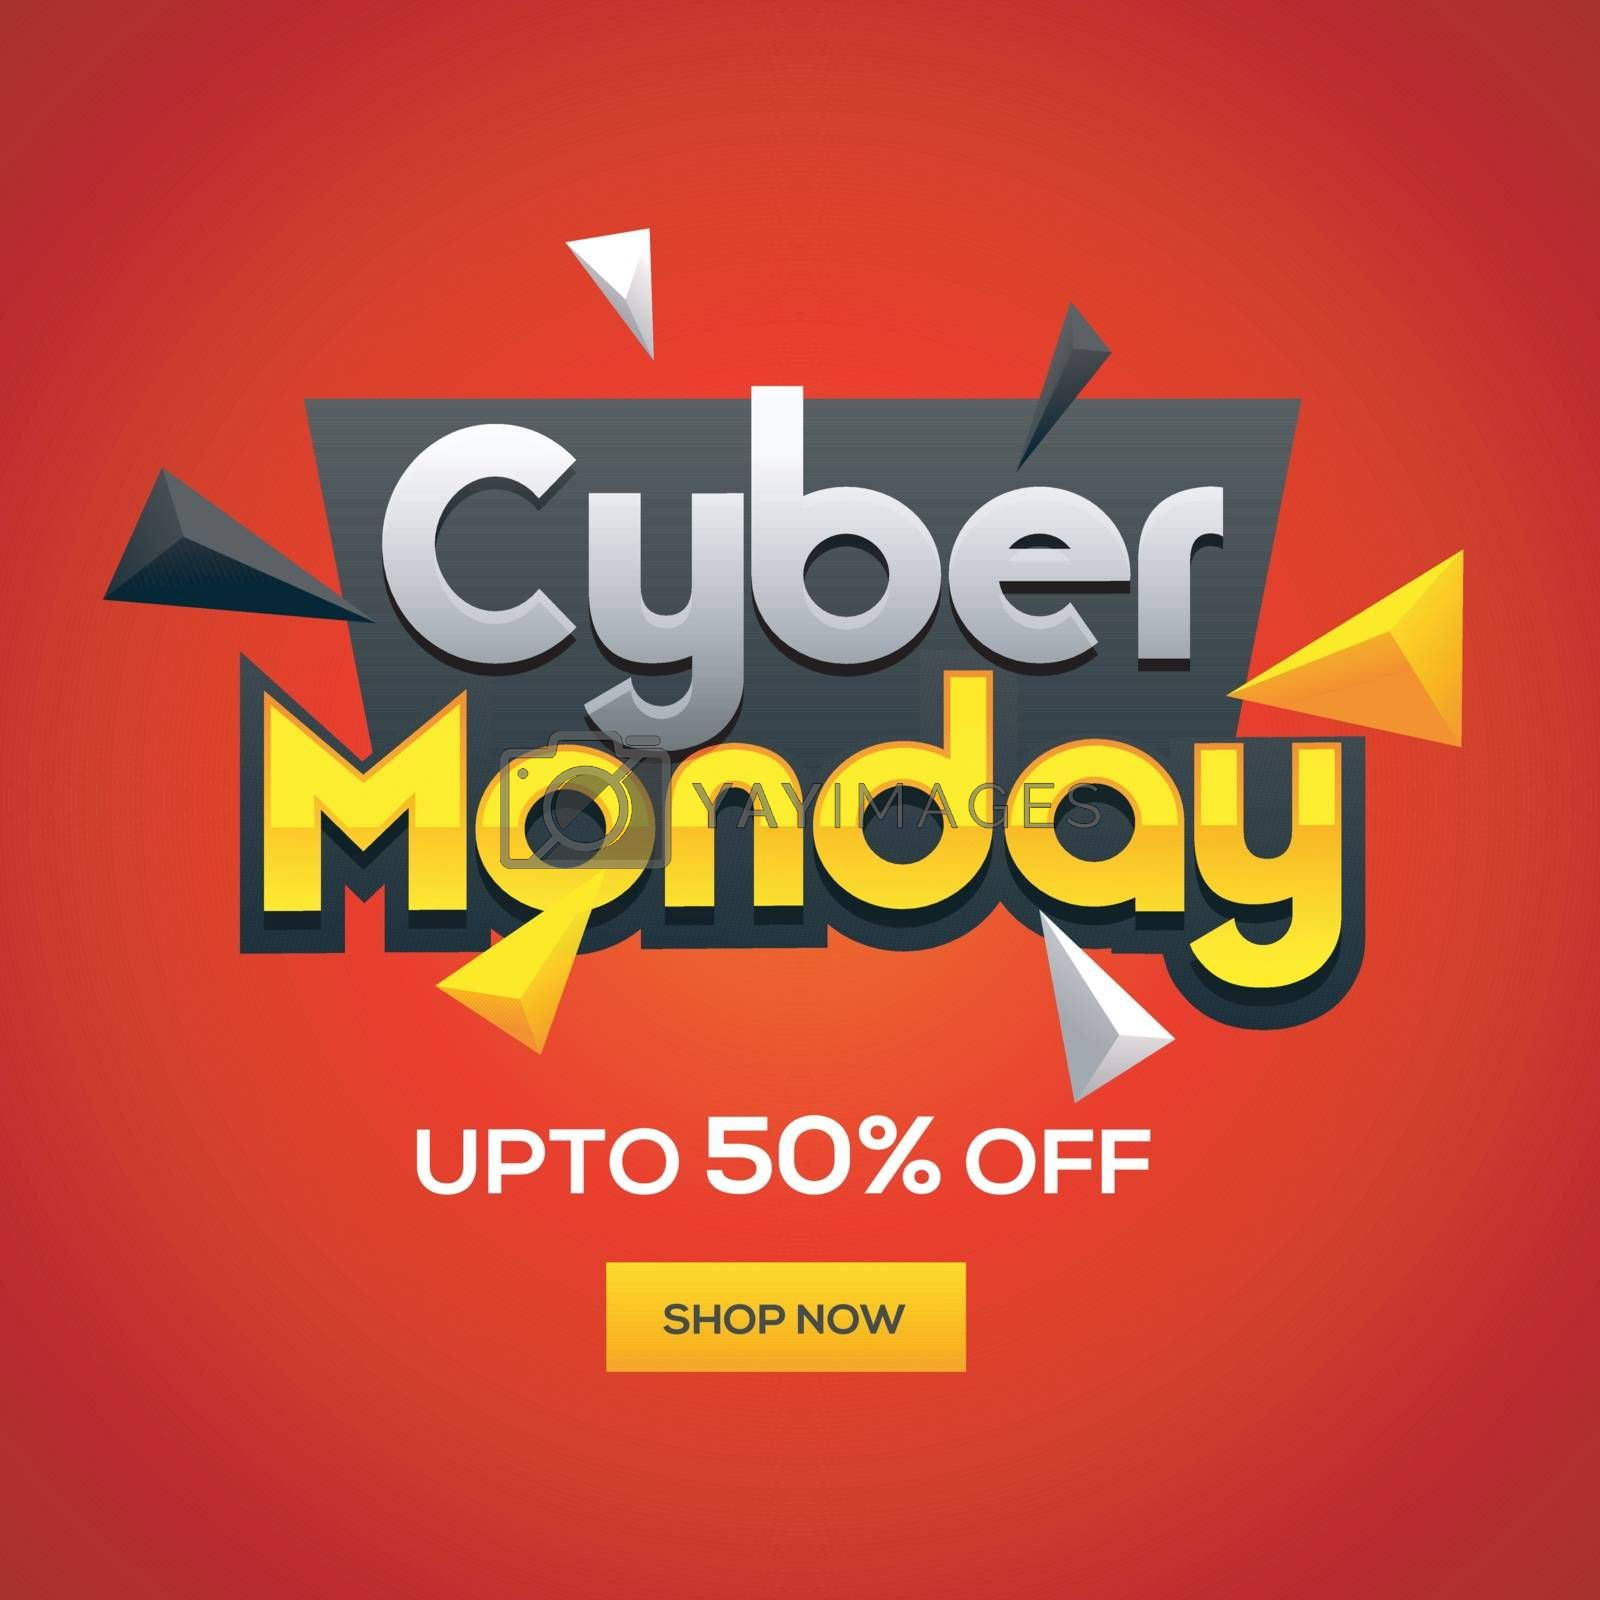 Cyber Monday Sale template design with 50% discount offer on glossy red background.